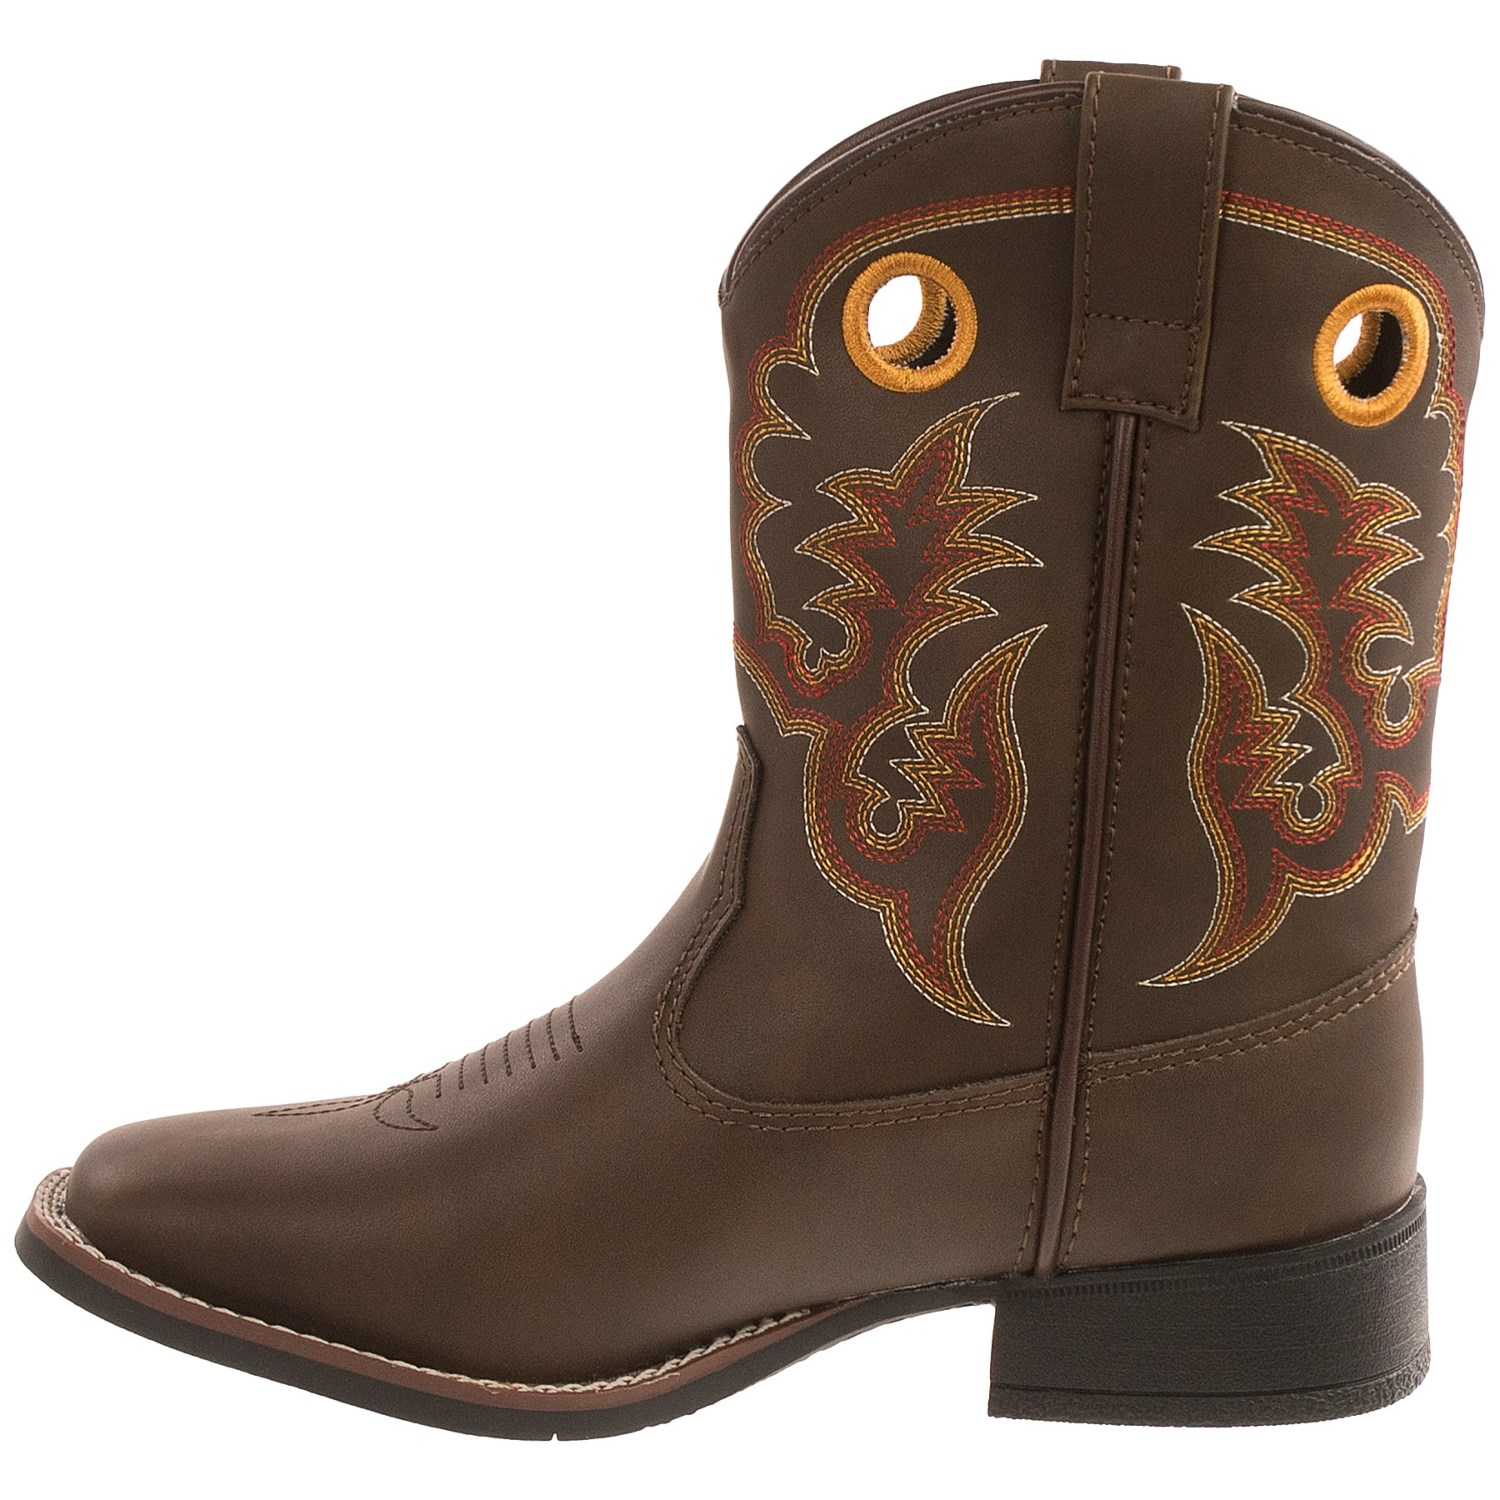 Laredo Mahaska Cowboy Boots For Little Kids 9339a Save 40